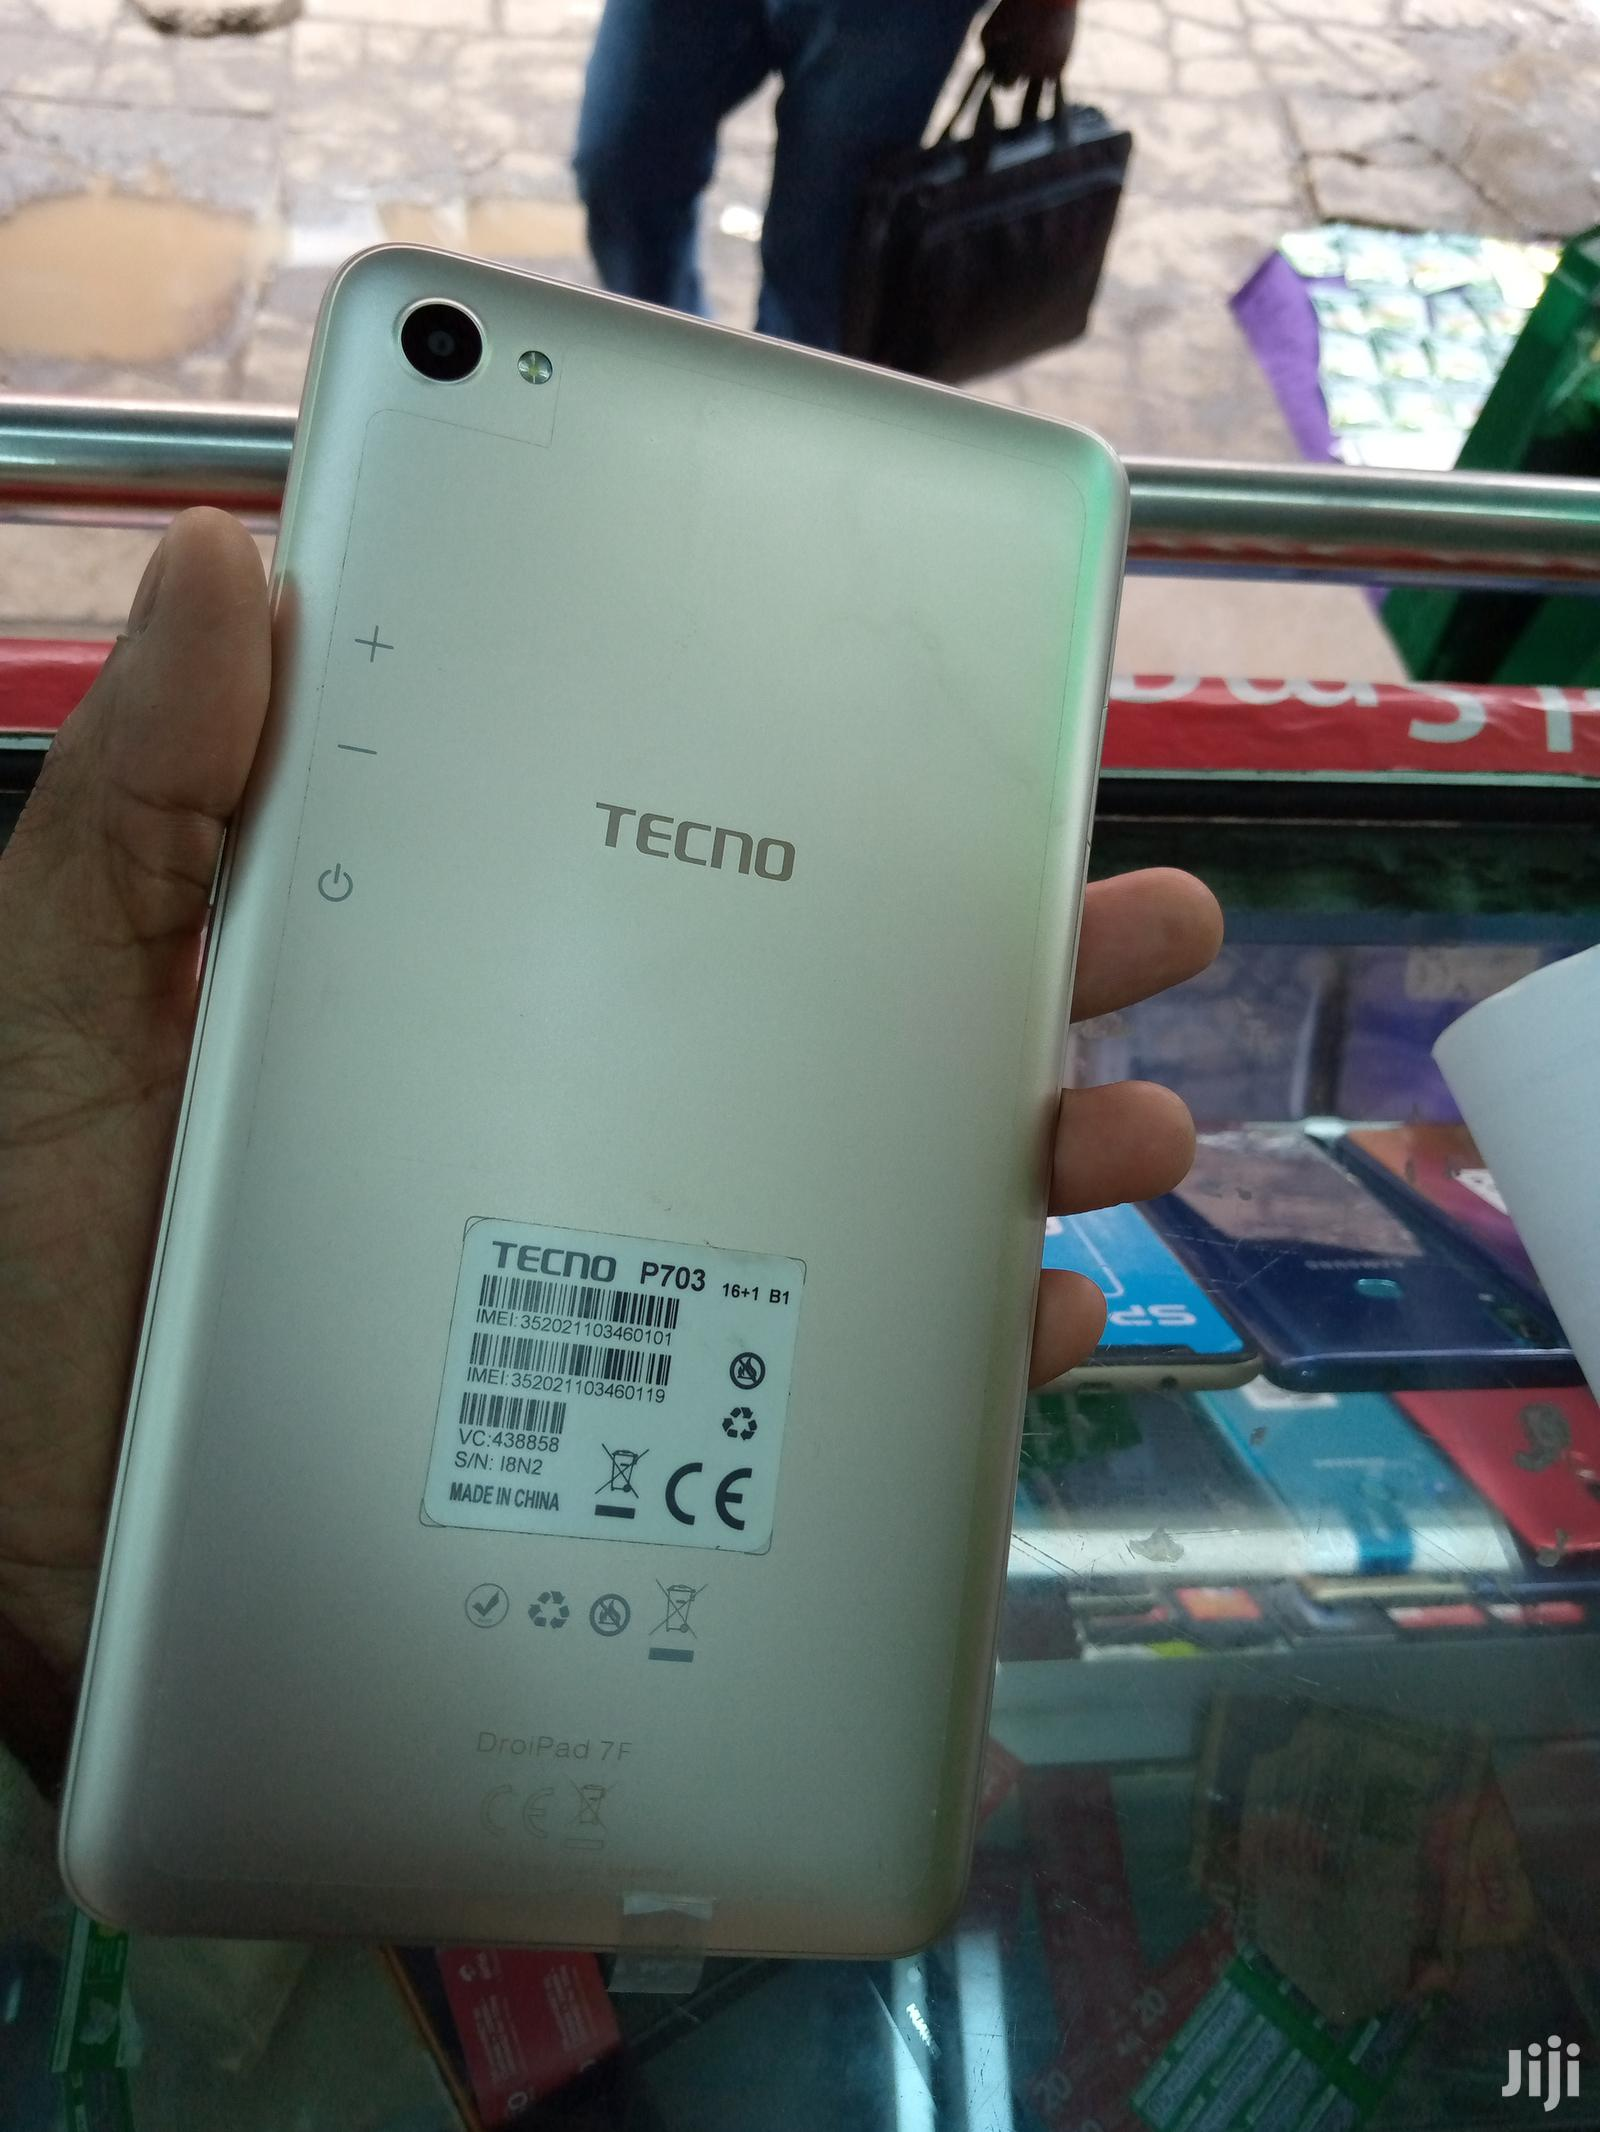 Archive: New Tecno DroidPad 7E 16 GB